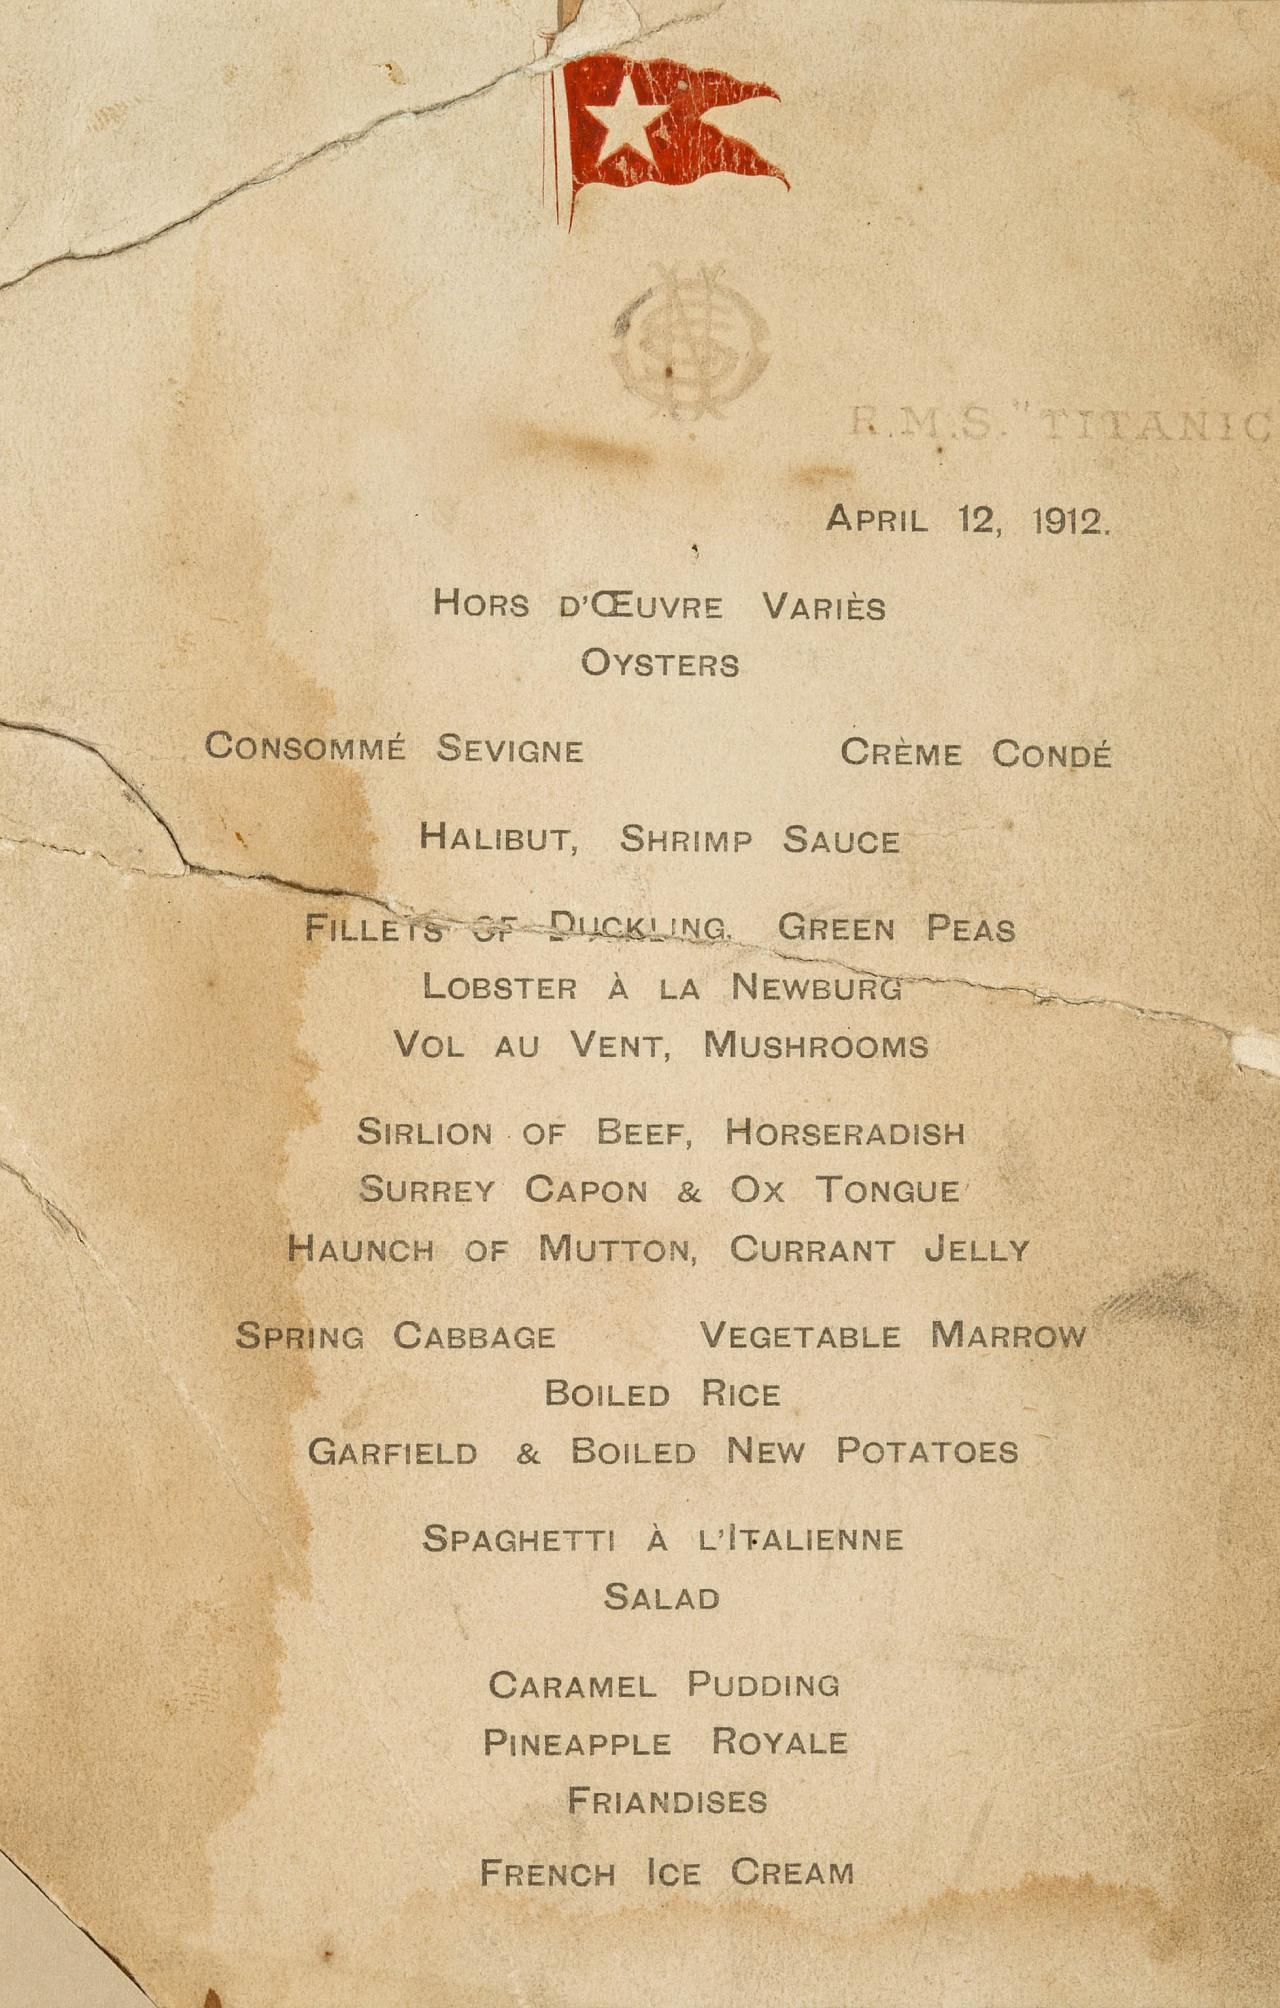 A First Class Menu Card Apparently From Dinner On Friday